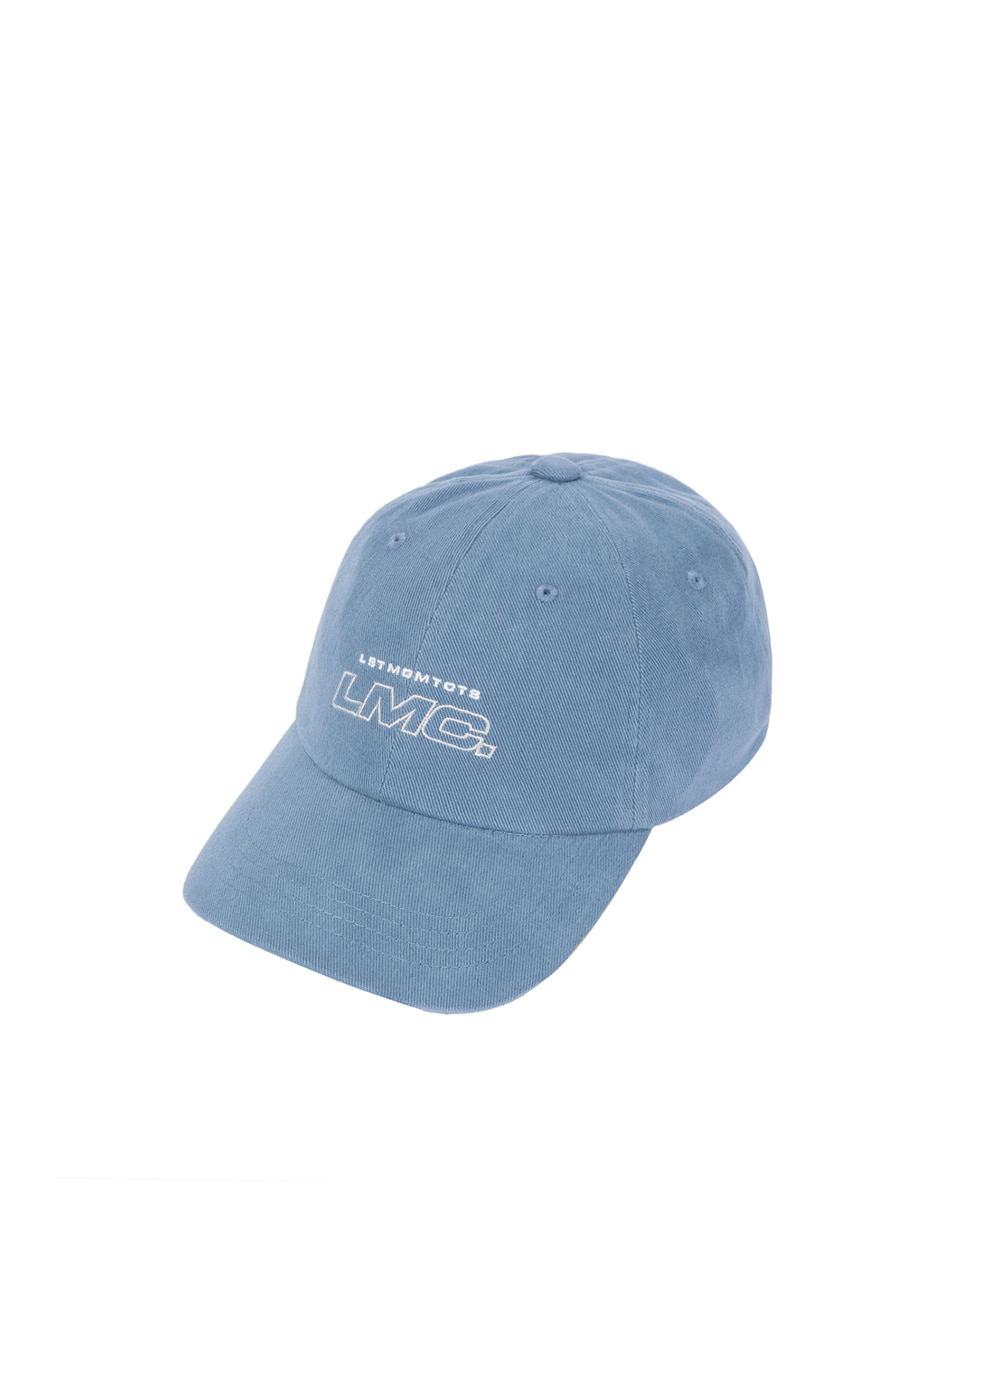 LMC ITALIC OUTLINE 6 PANEL CAP vtg blue